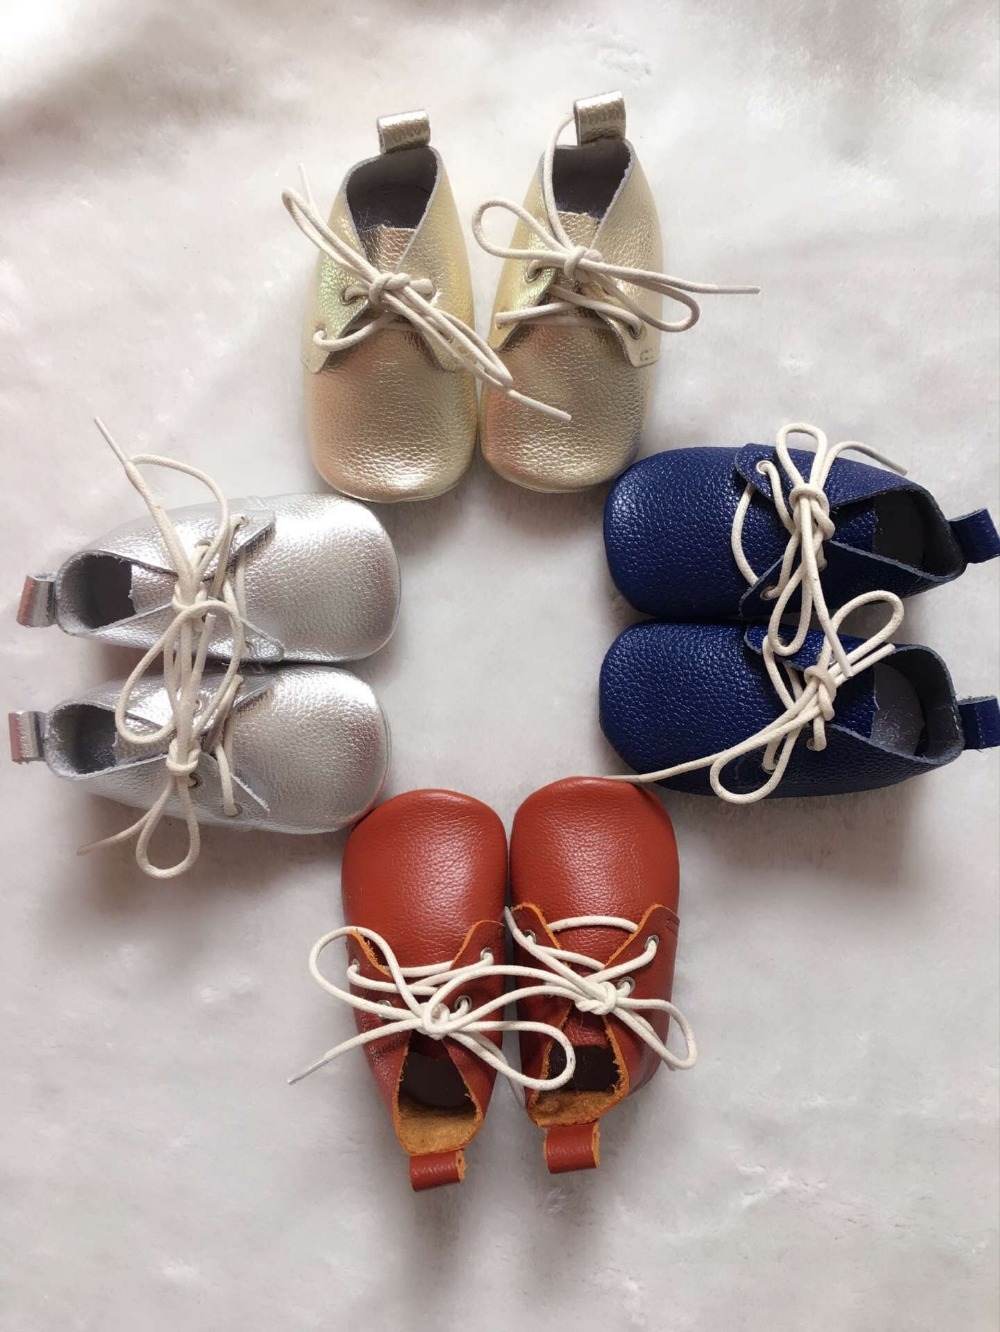 Hongteya New 13colors Genuine Leather Baby Moccasins Shoes solid lace up Baby Shoes Newborn first walker Infant Shoes